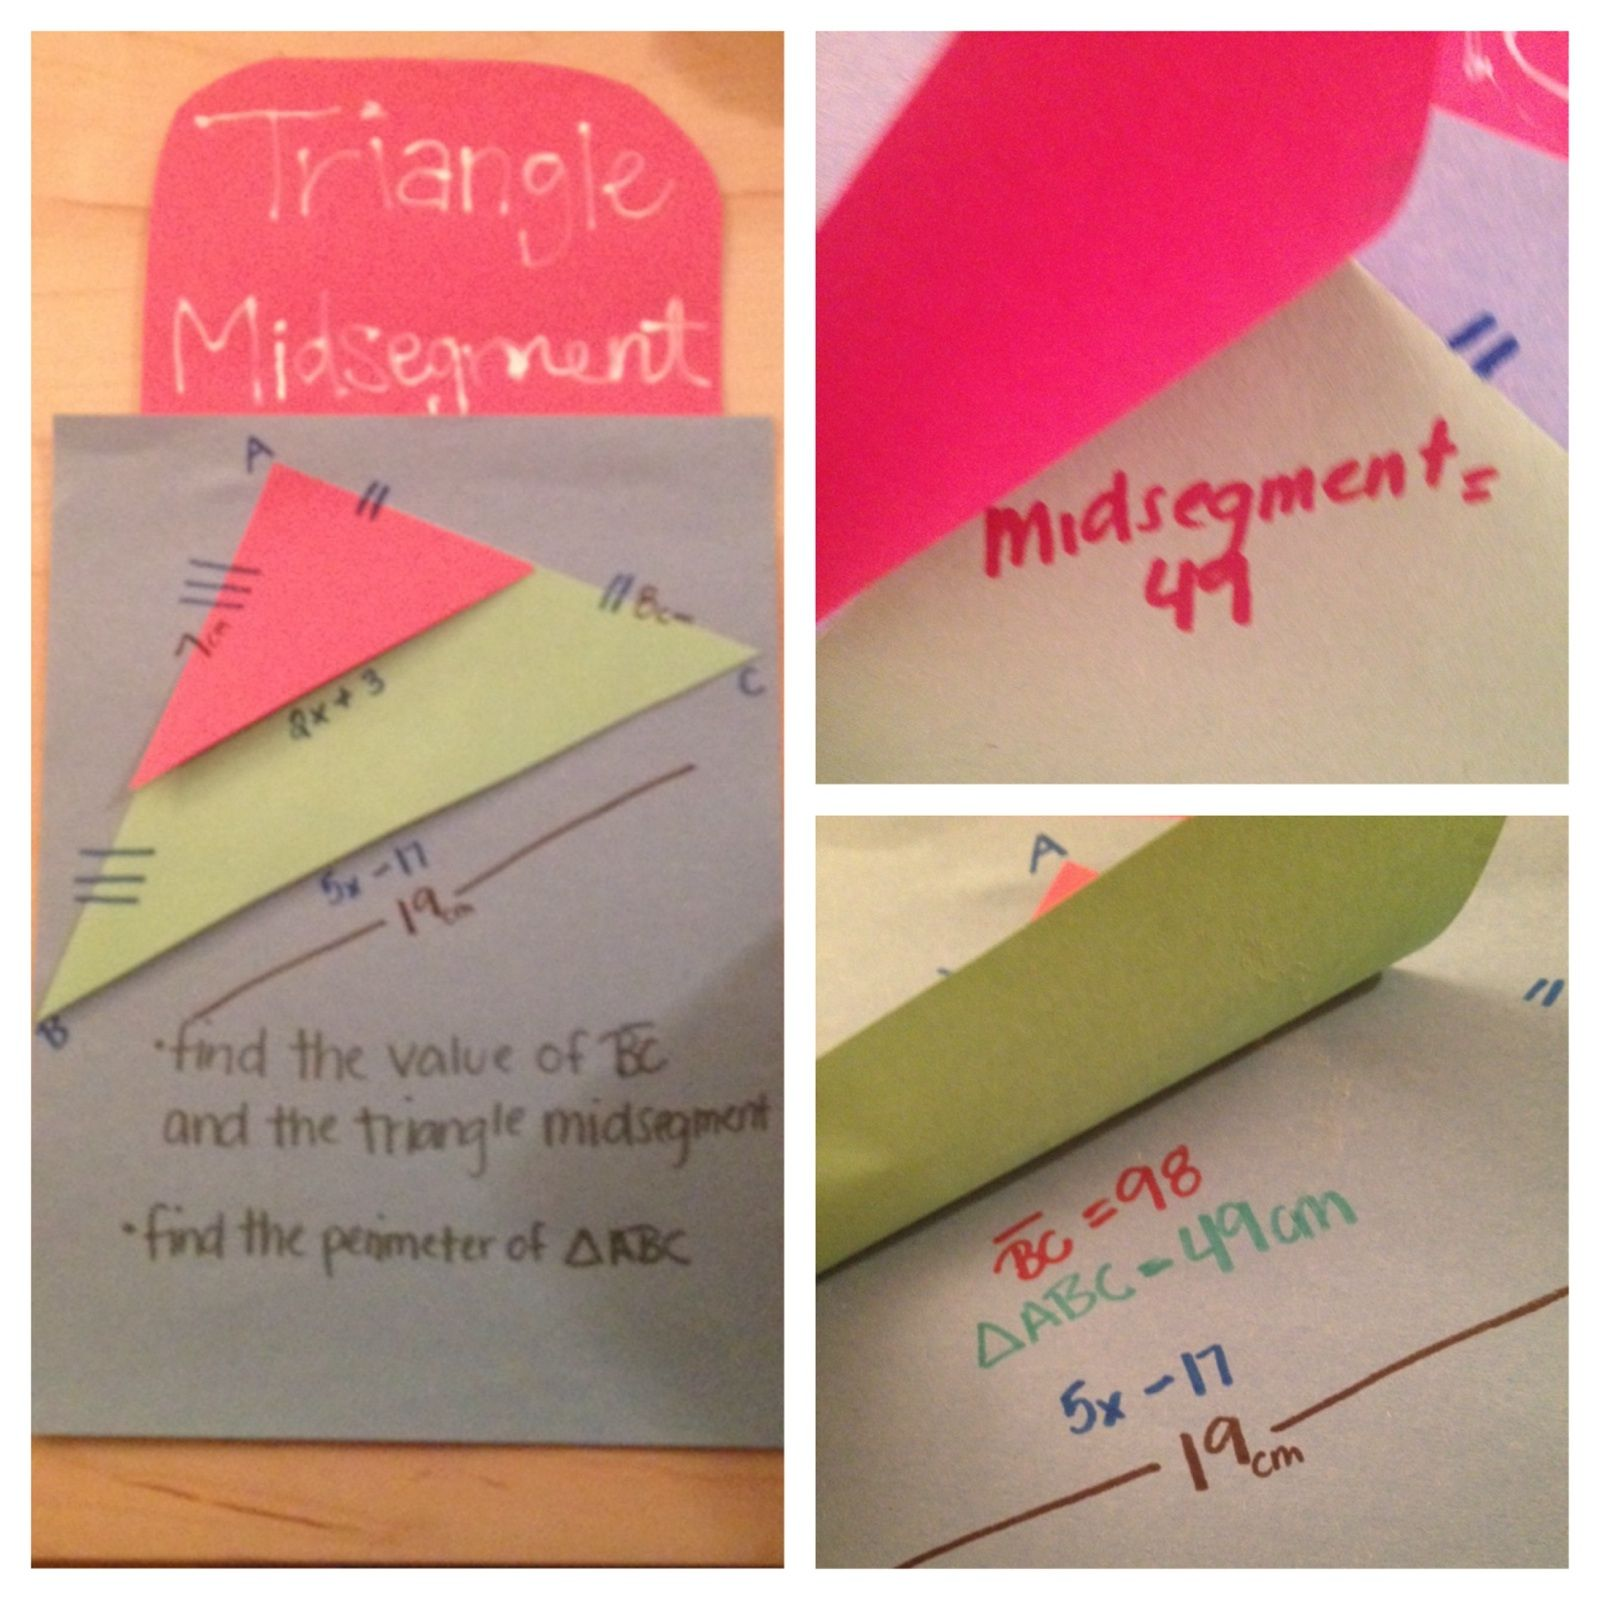 Triangle Midsegment Pop Up Find The Midsegment Length